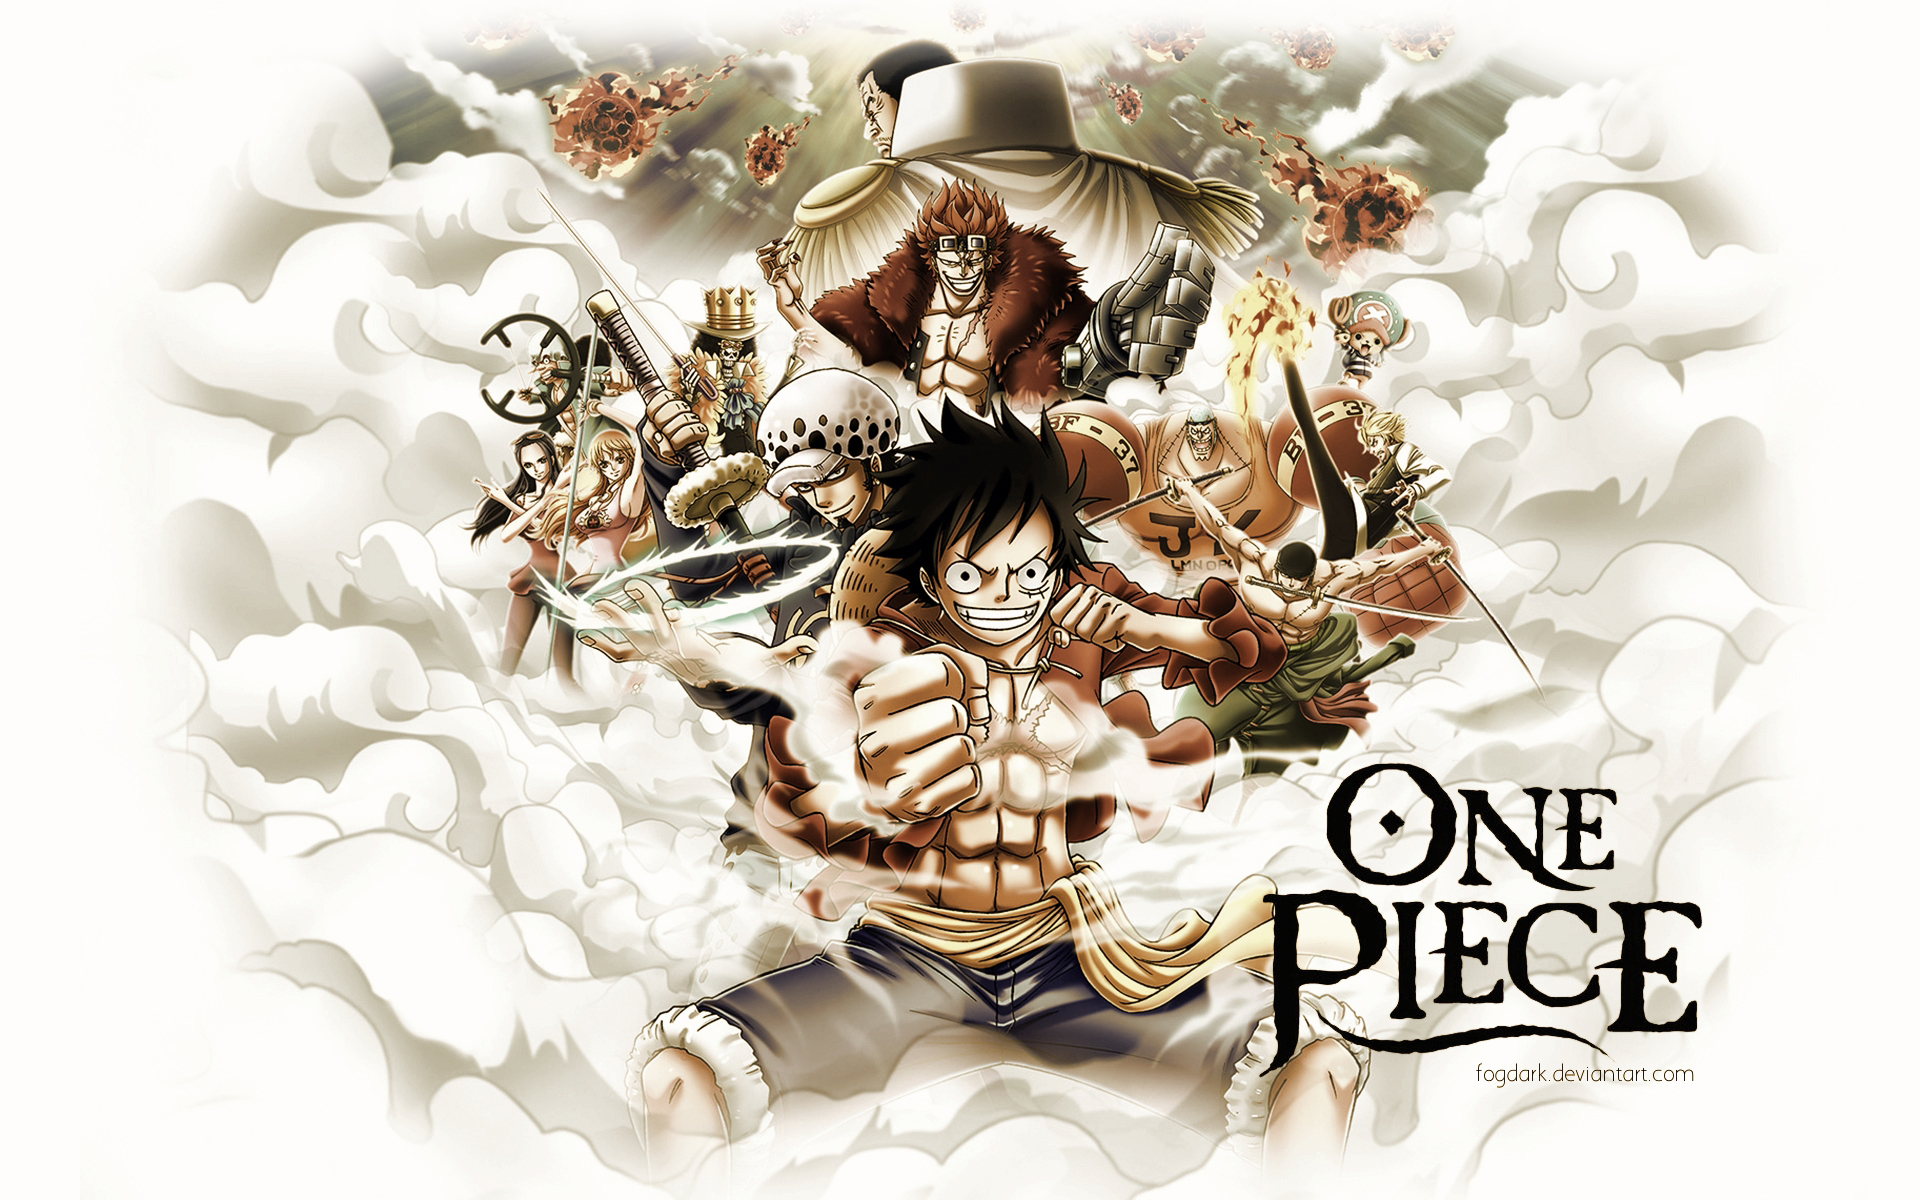 one piece law wallpaper iphone 6